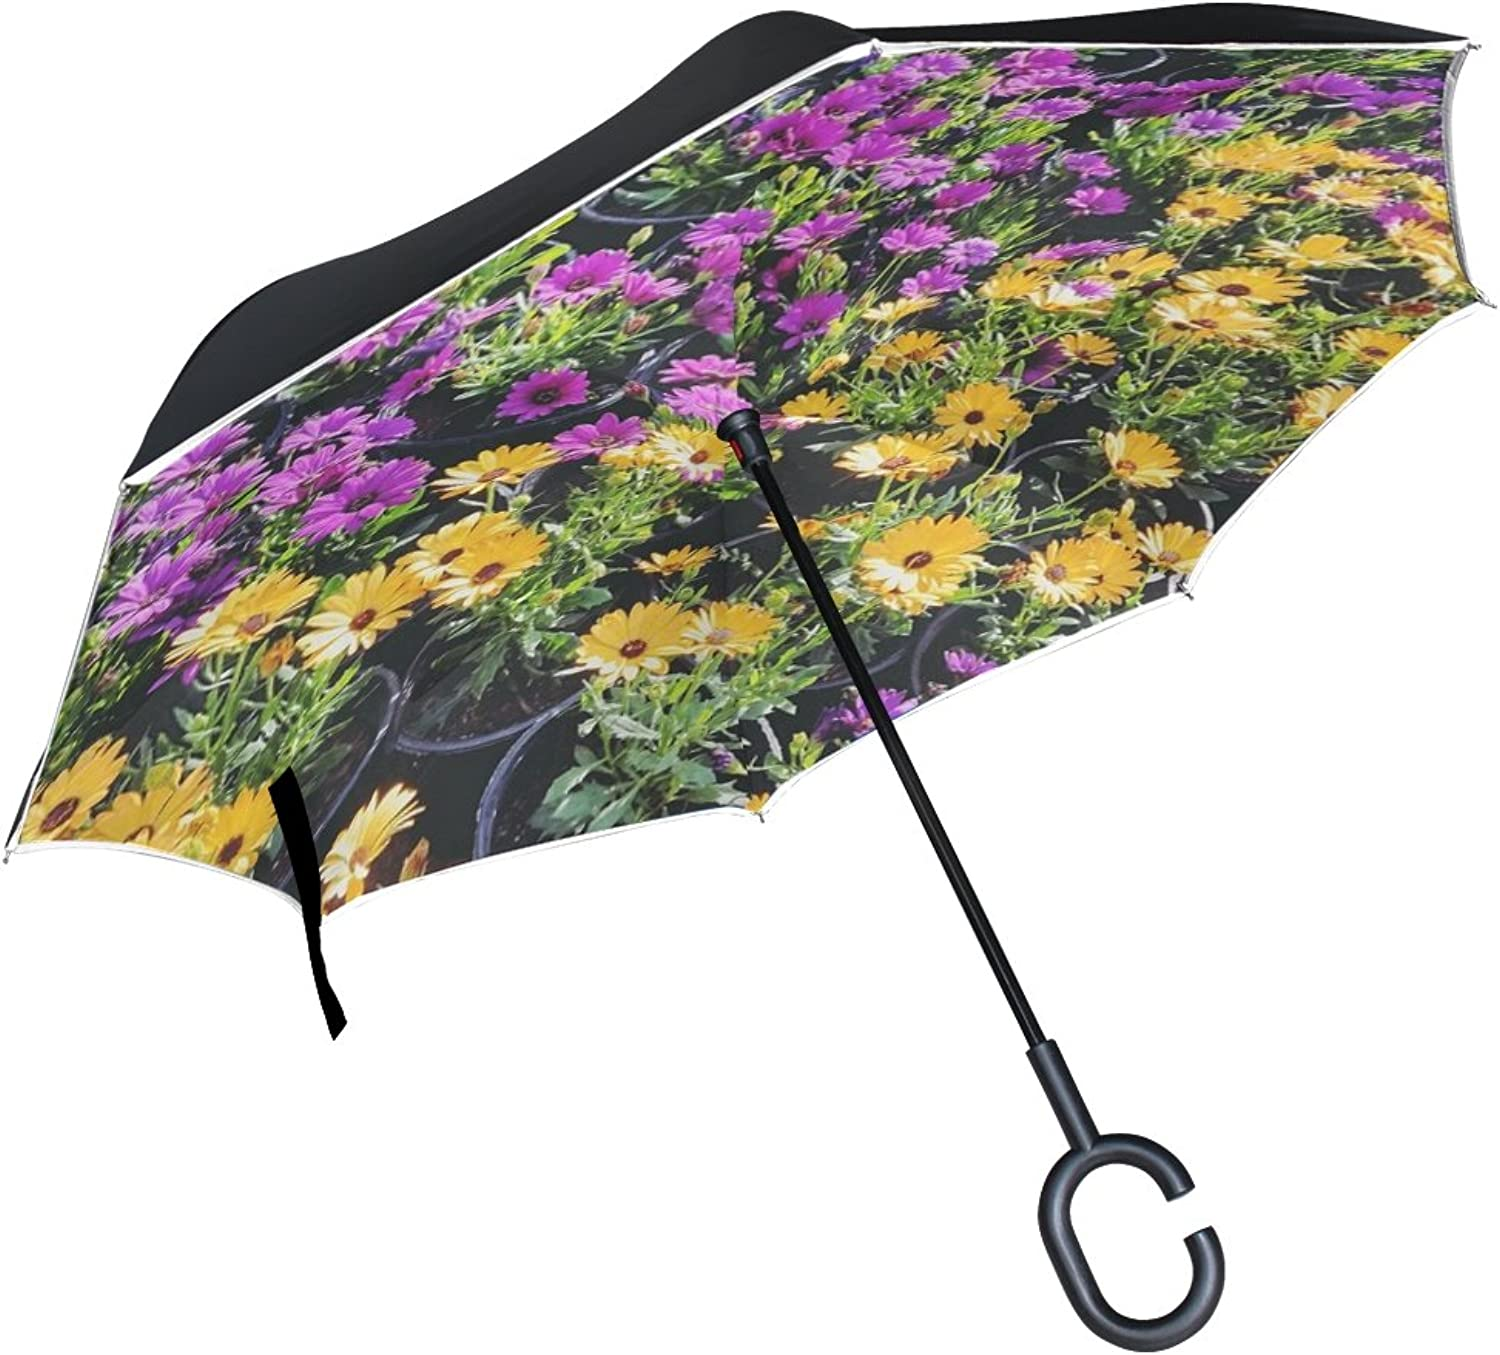 Double Layer Ingreened Spring Flowers Pink Yellow colors Umbrellas Reverse Folding Umbrella Windproof Uv Predection Big Straight Umbrella for Car Rain Outdoor with CShaped Handle